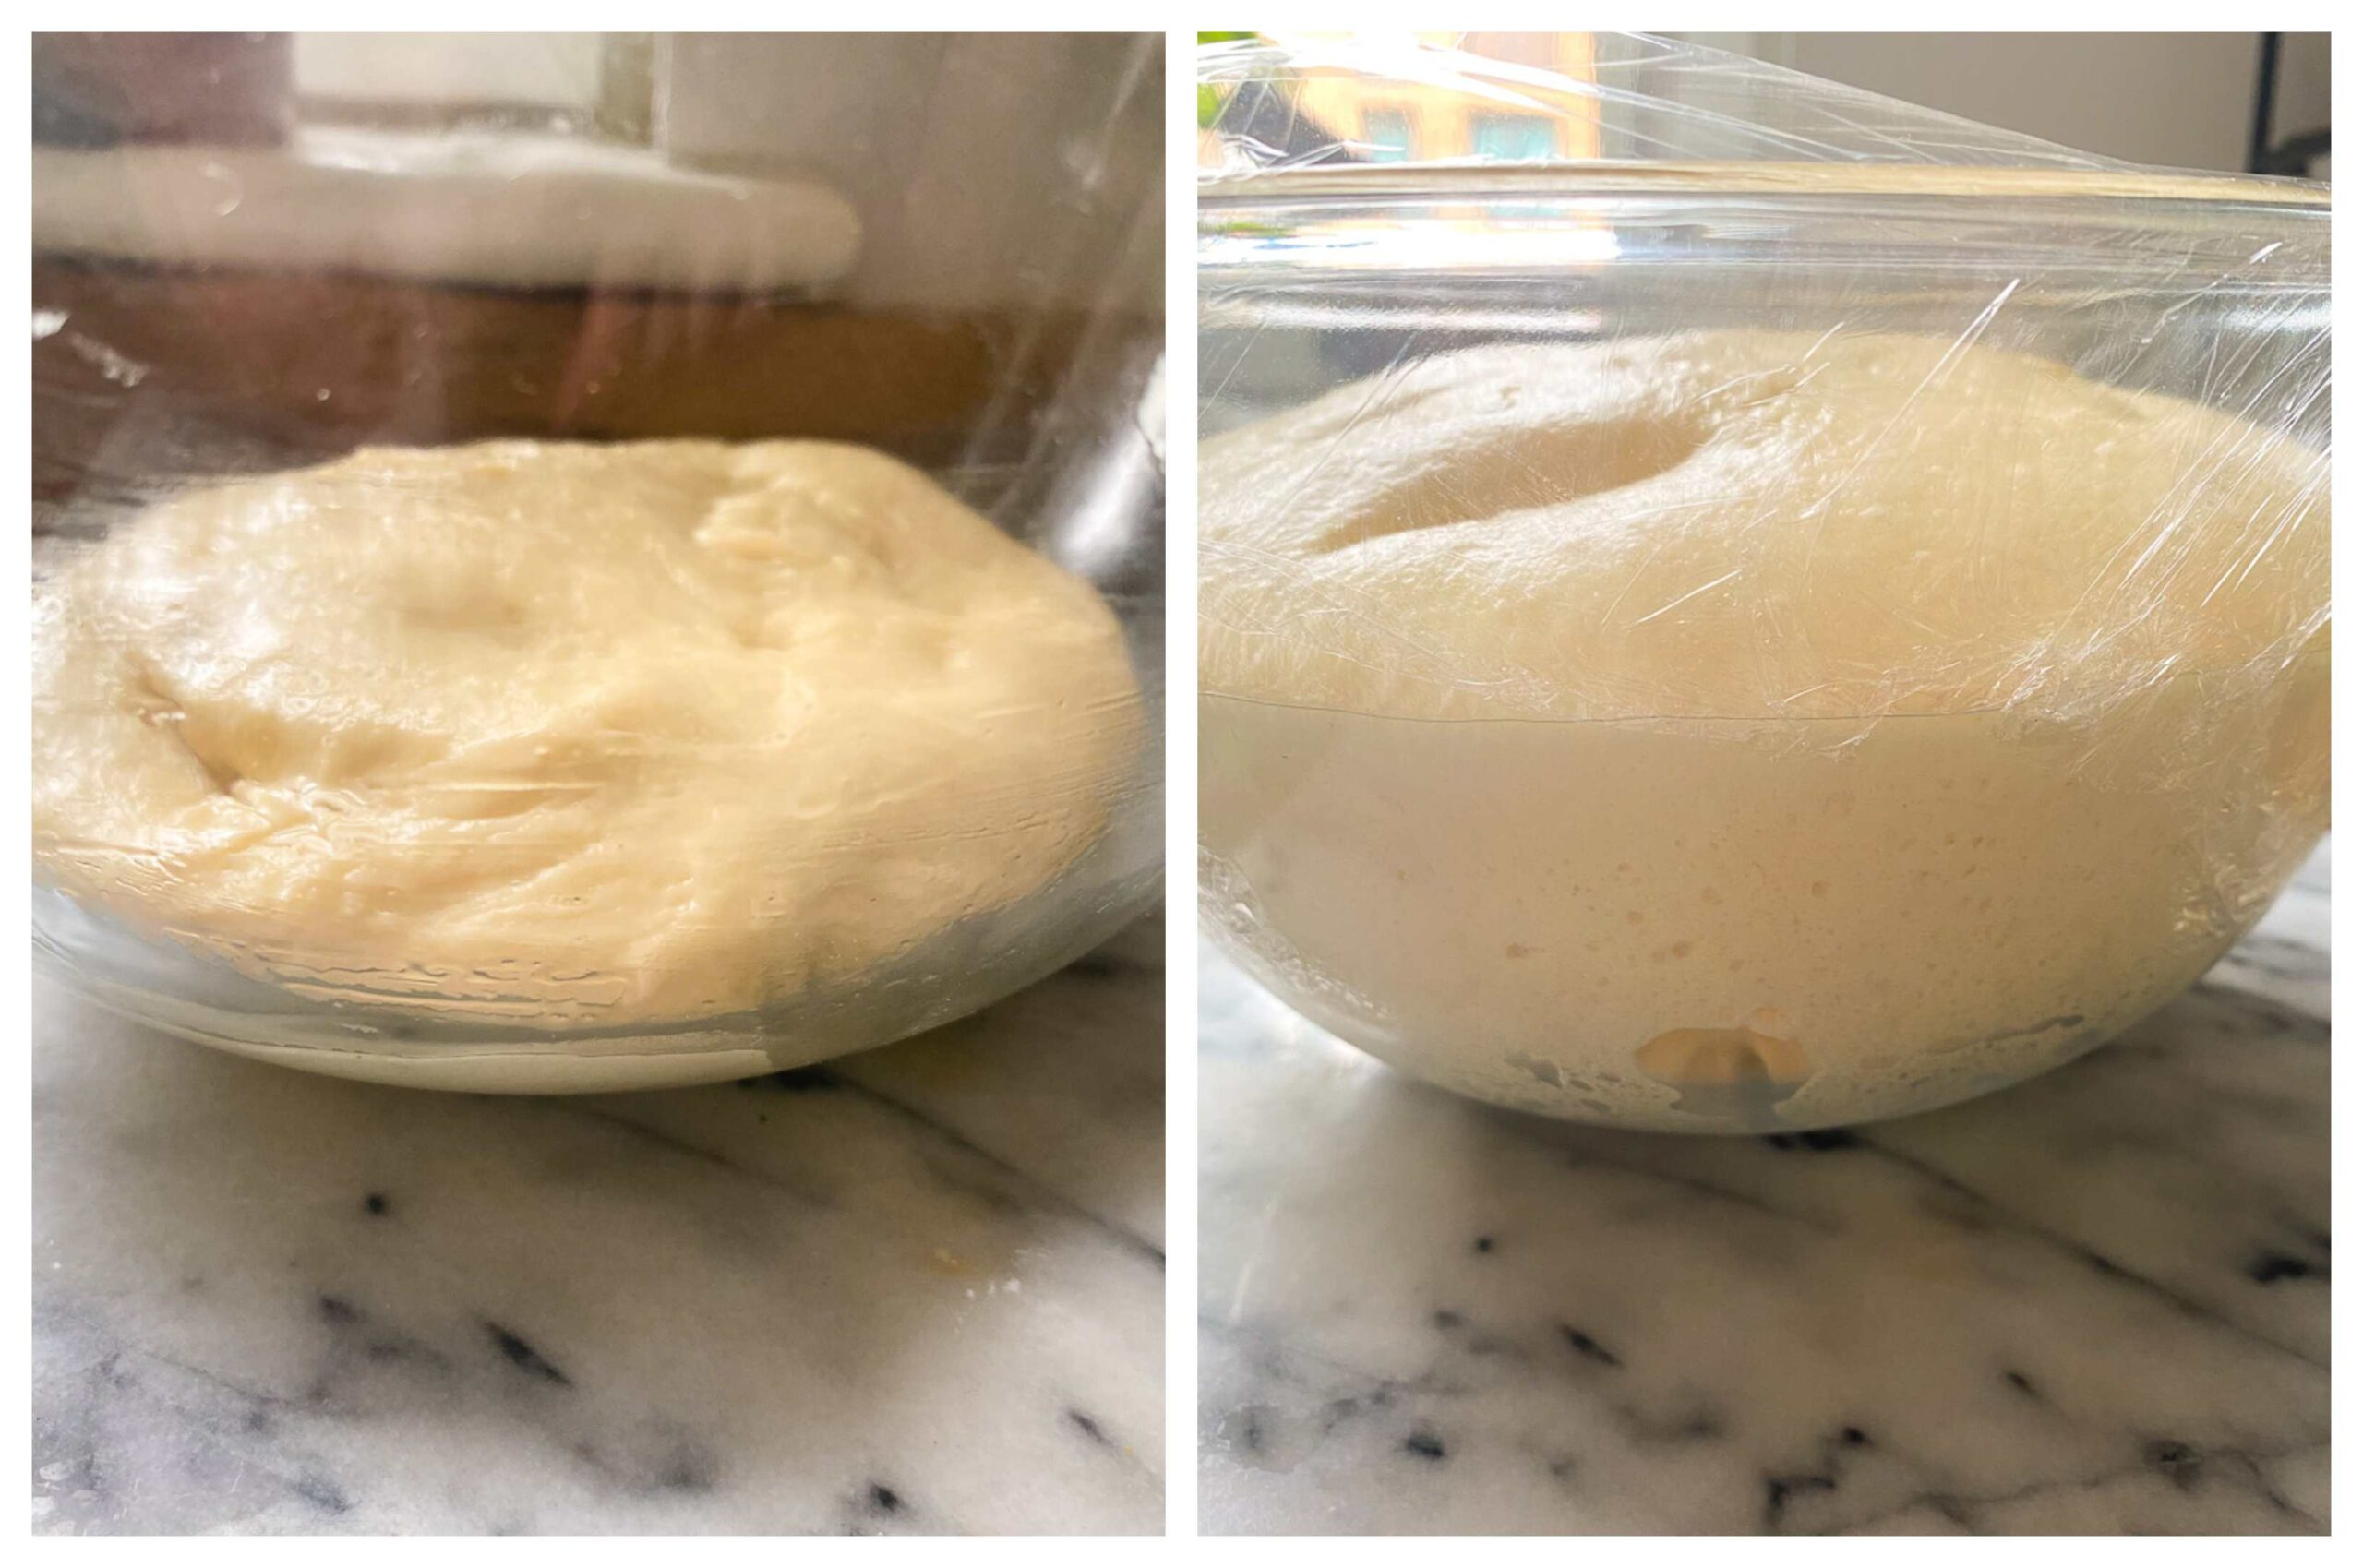 stages of dinner roll dough proofing